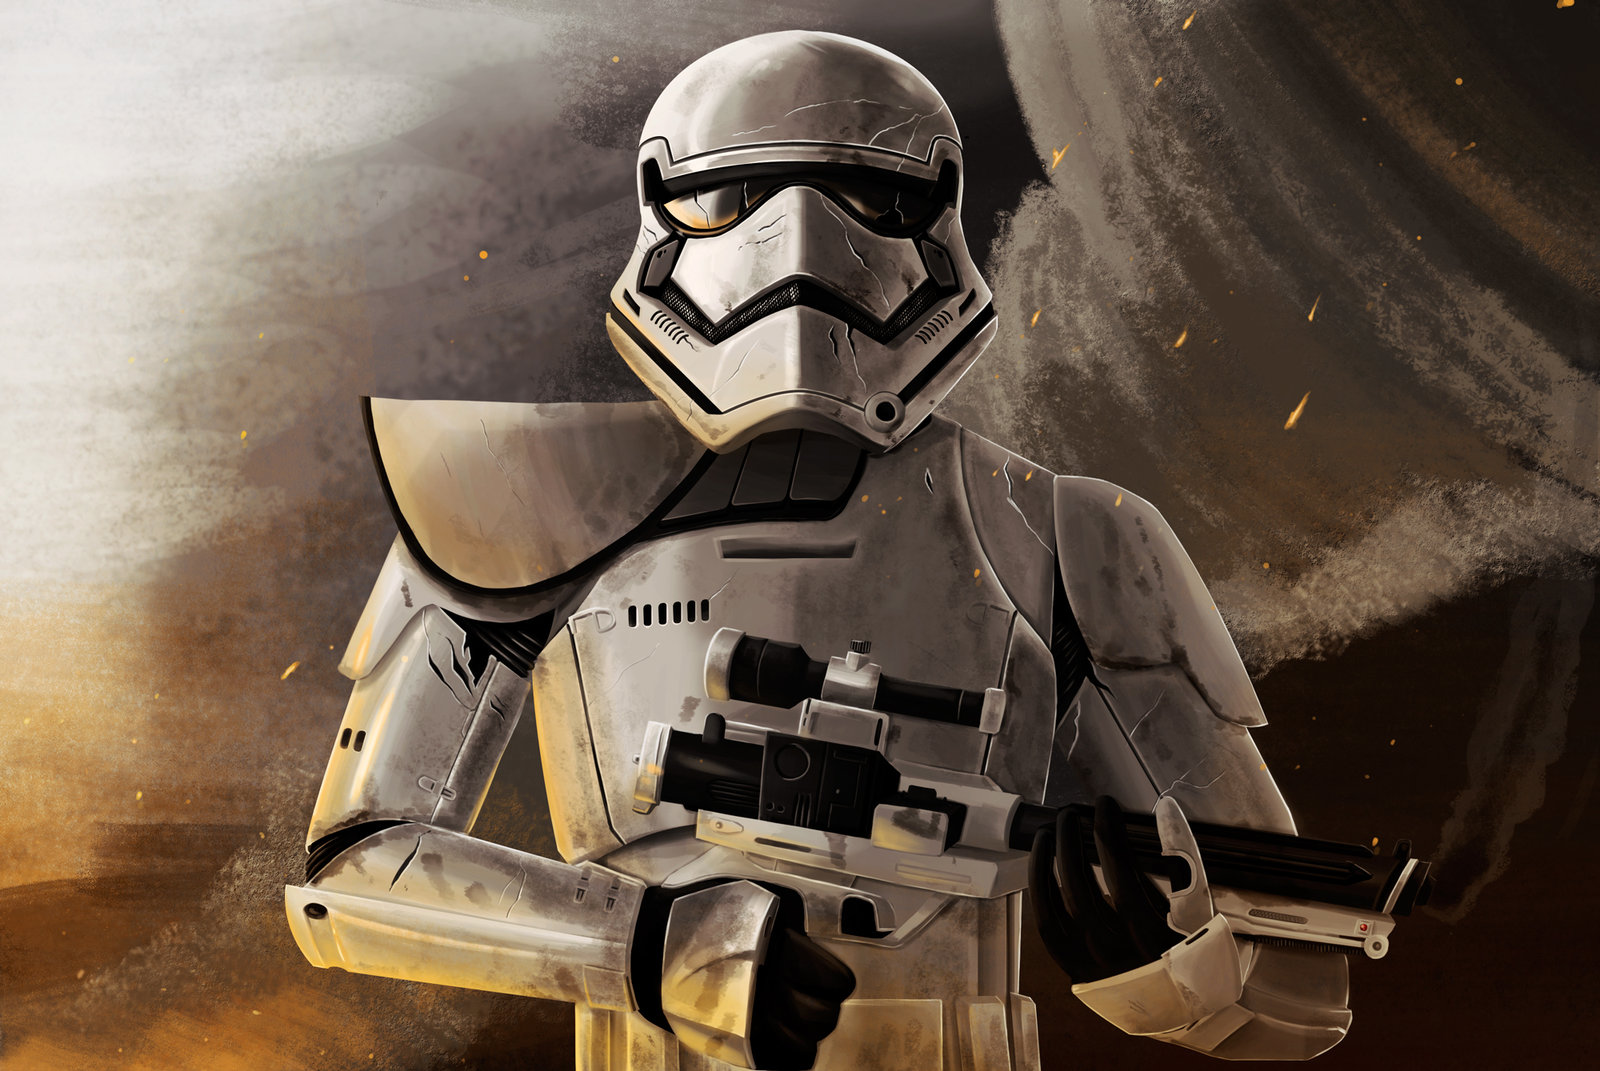 Stormtrooper First order by Dahcoomicman 1600x1071